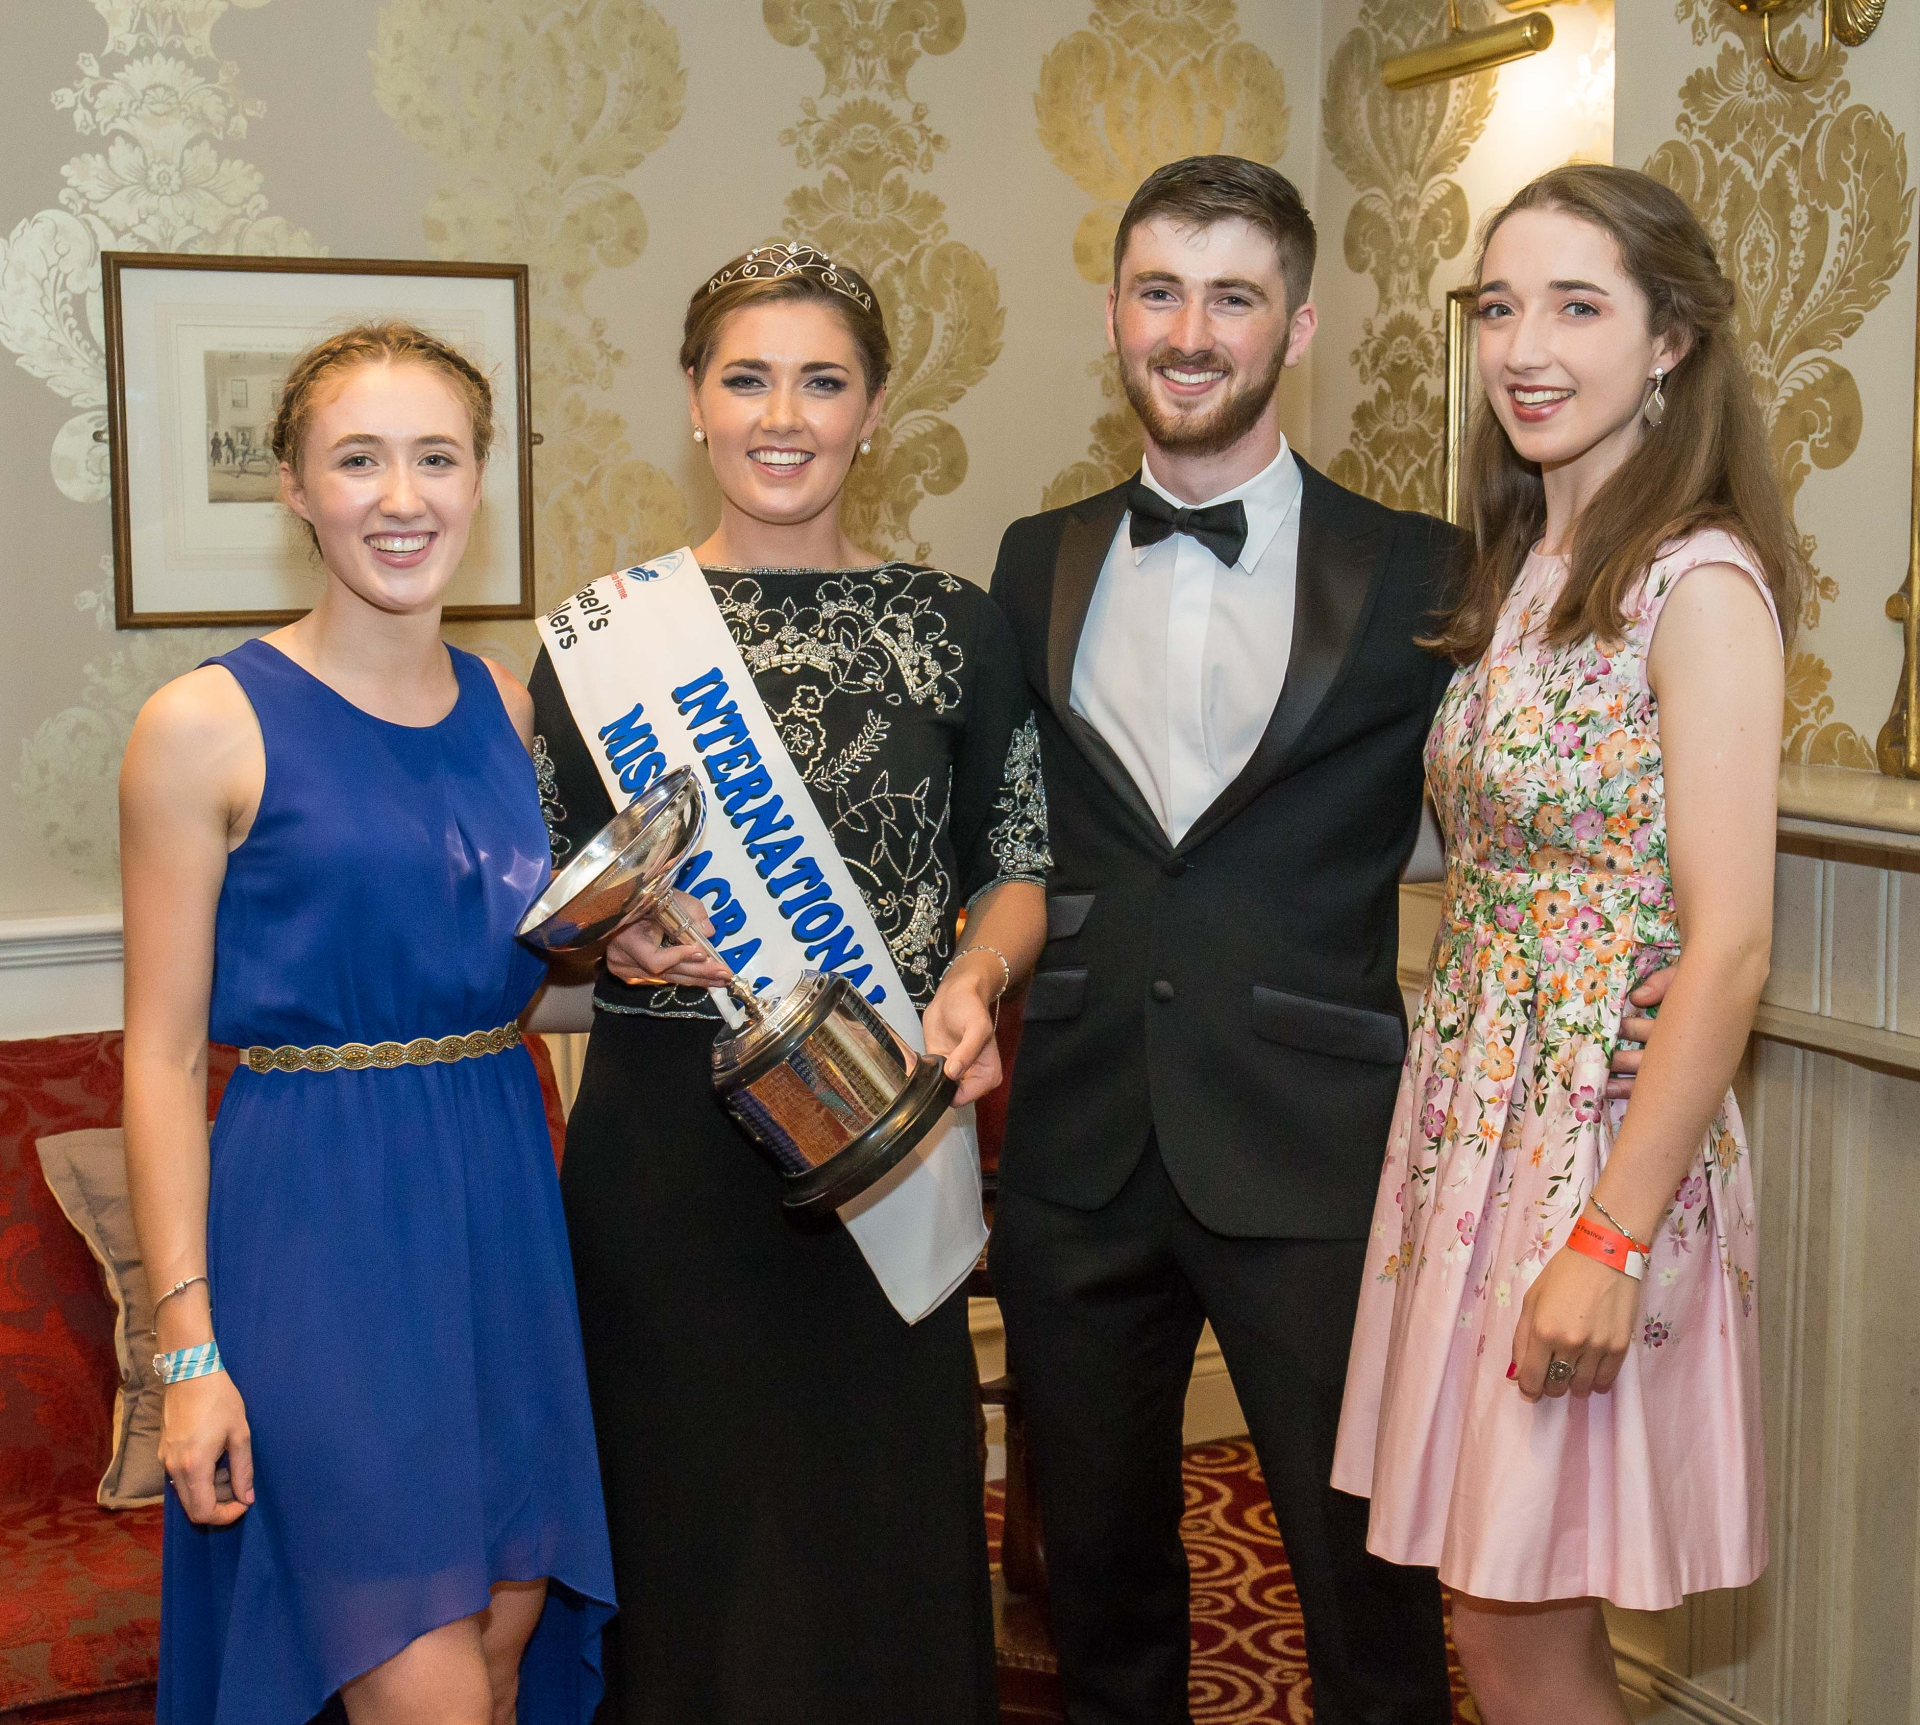 Josephine O'Neill and family Miss Macra